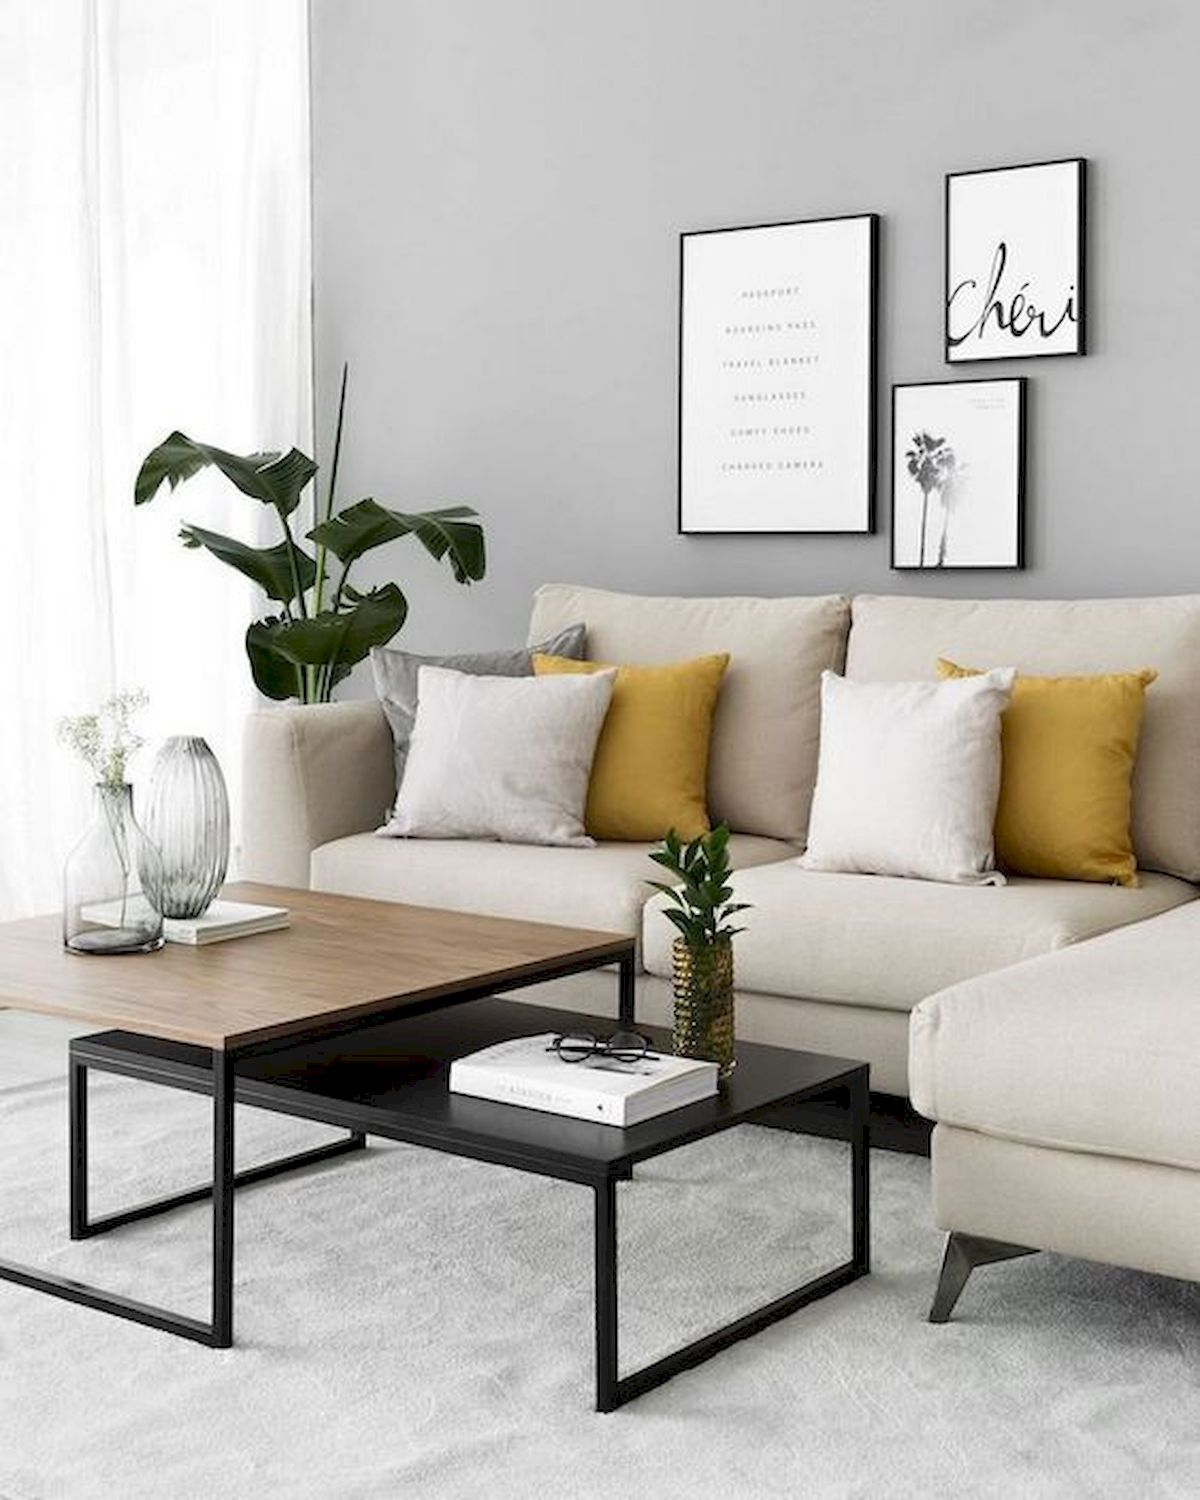 50 Small Living Room Ideas: 50+ Genius Small Living Room Decor Ideas And Remodel For